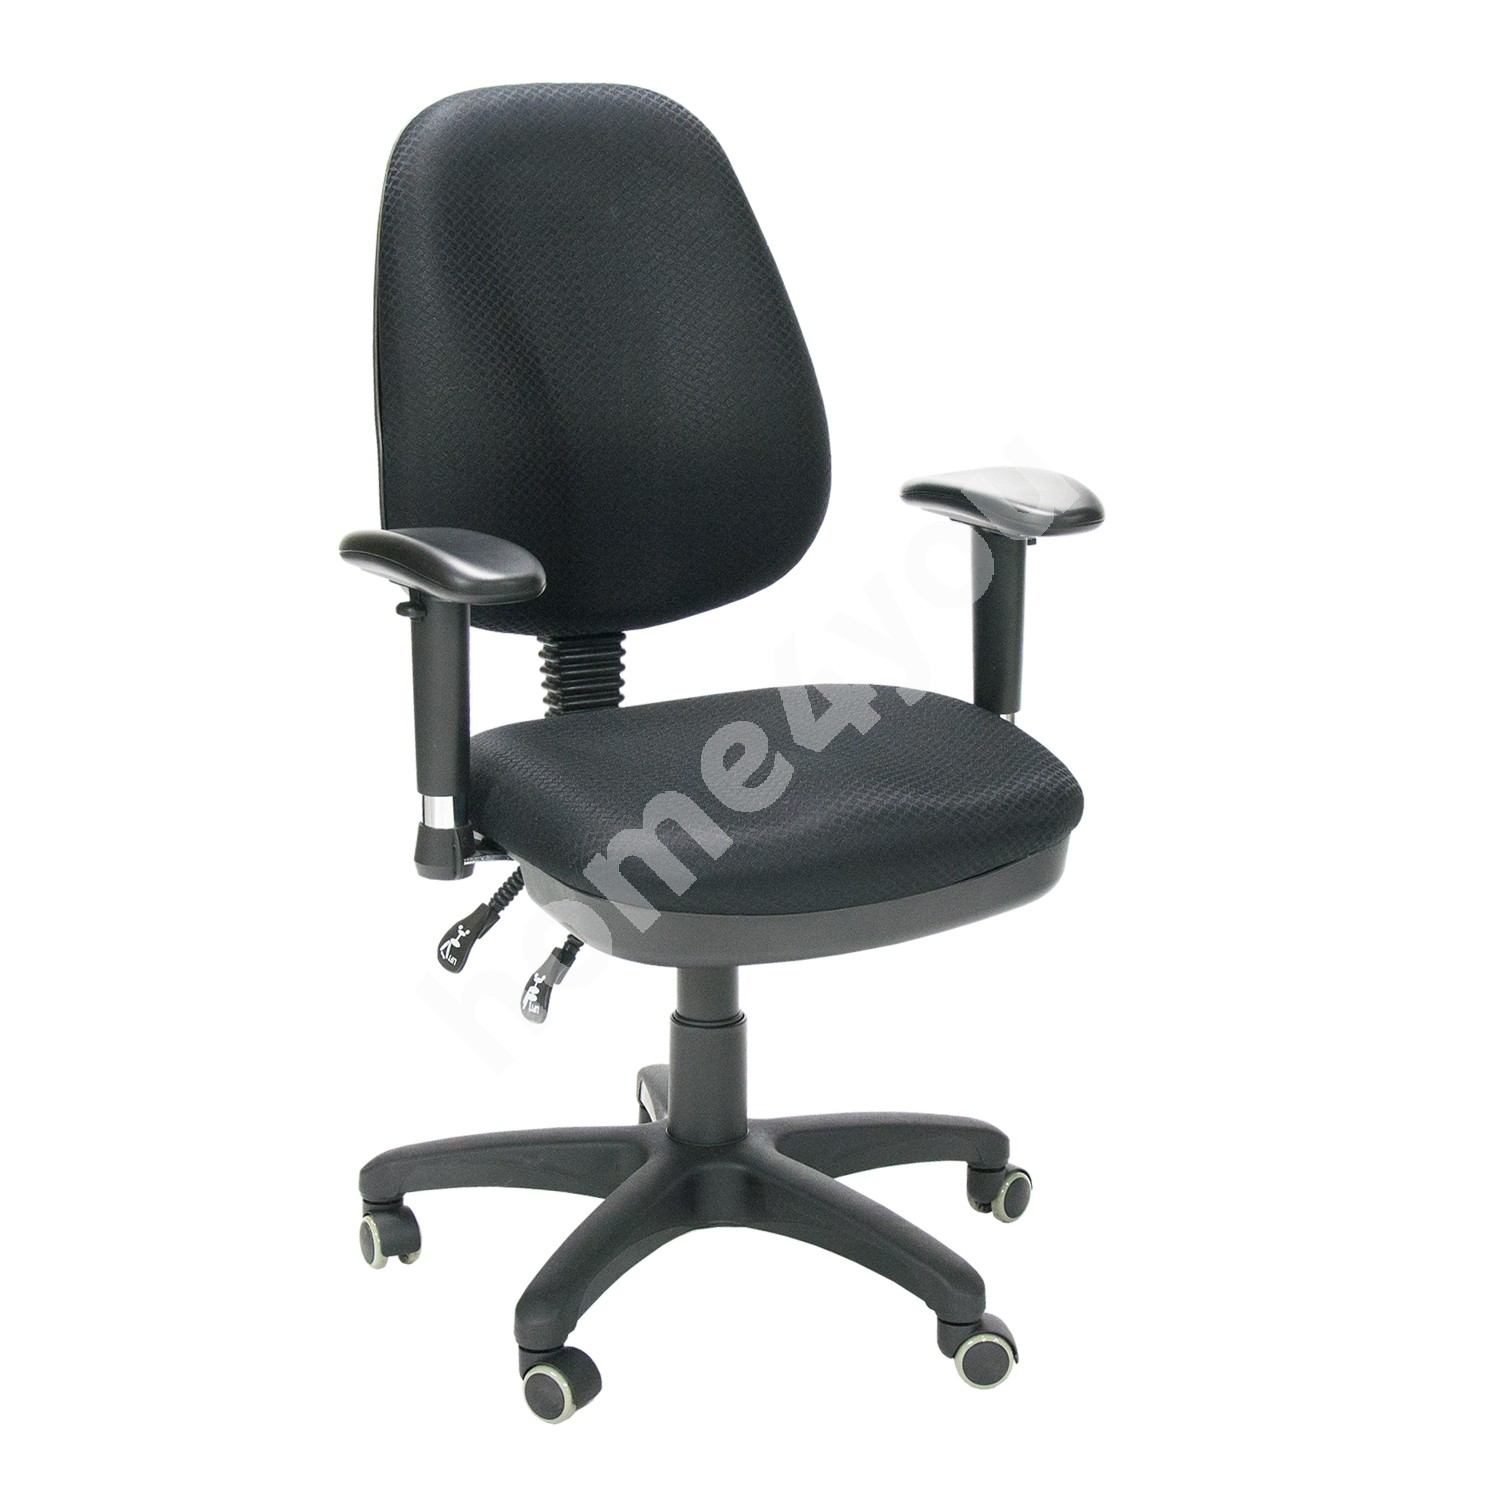 Task chair SAVONA 65xD47xH96-106cm, seat: fabric, color: black